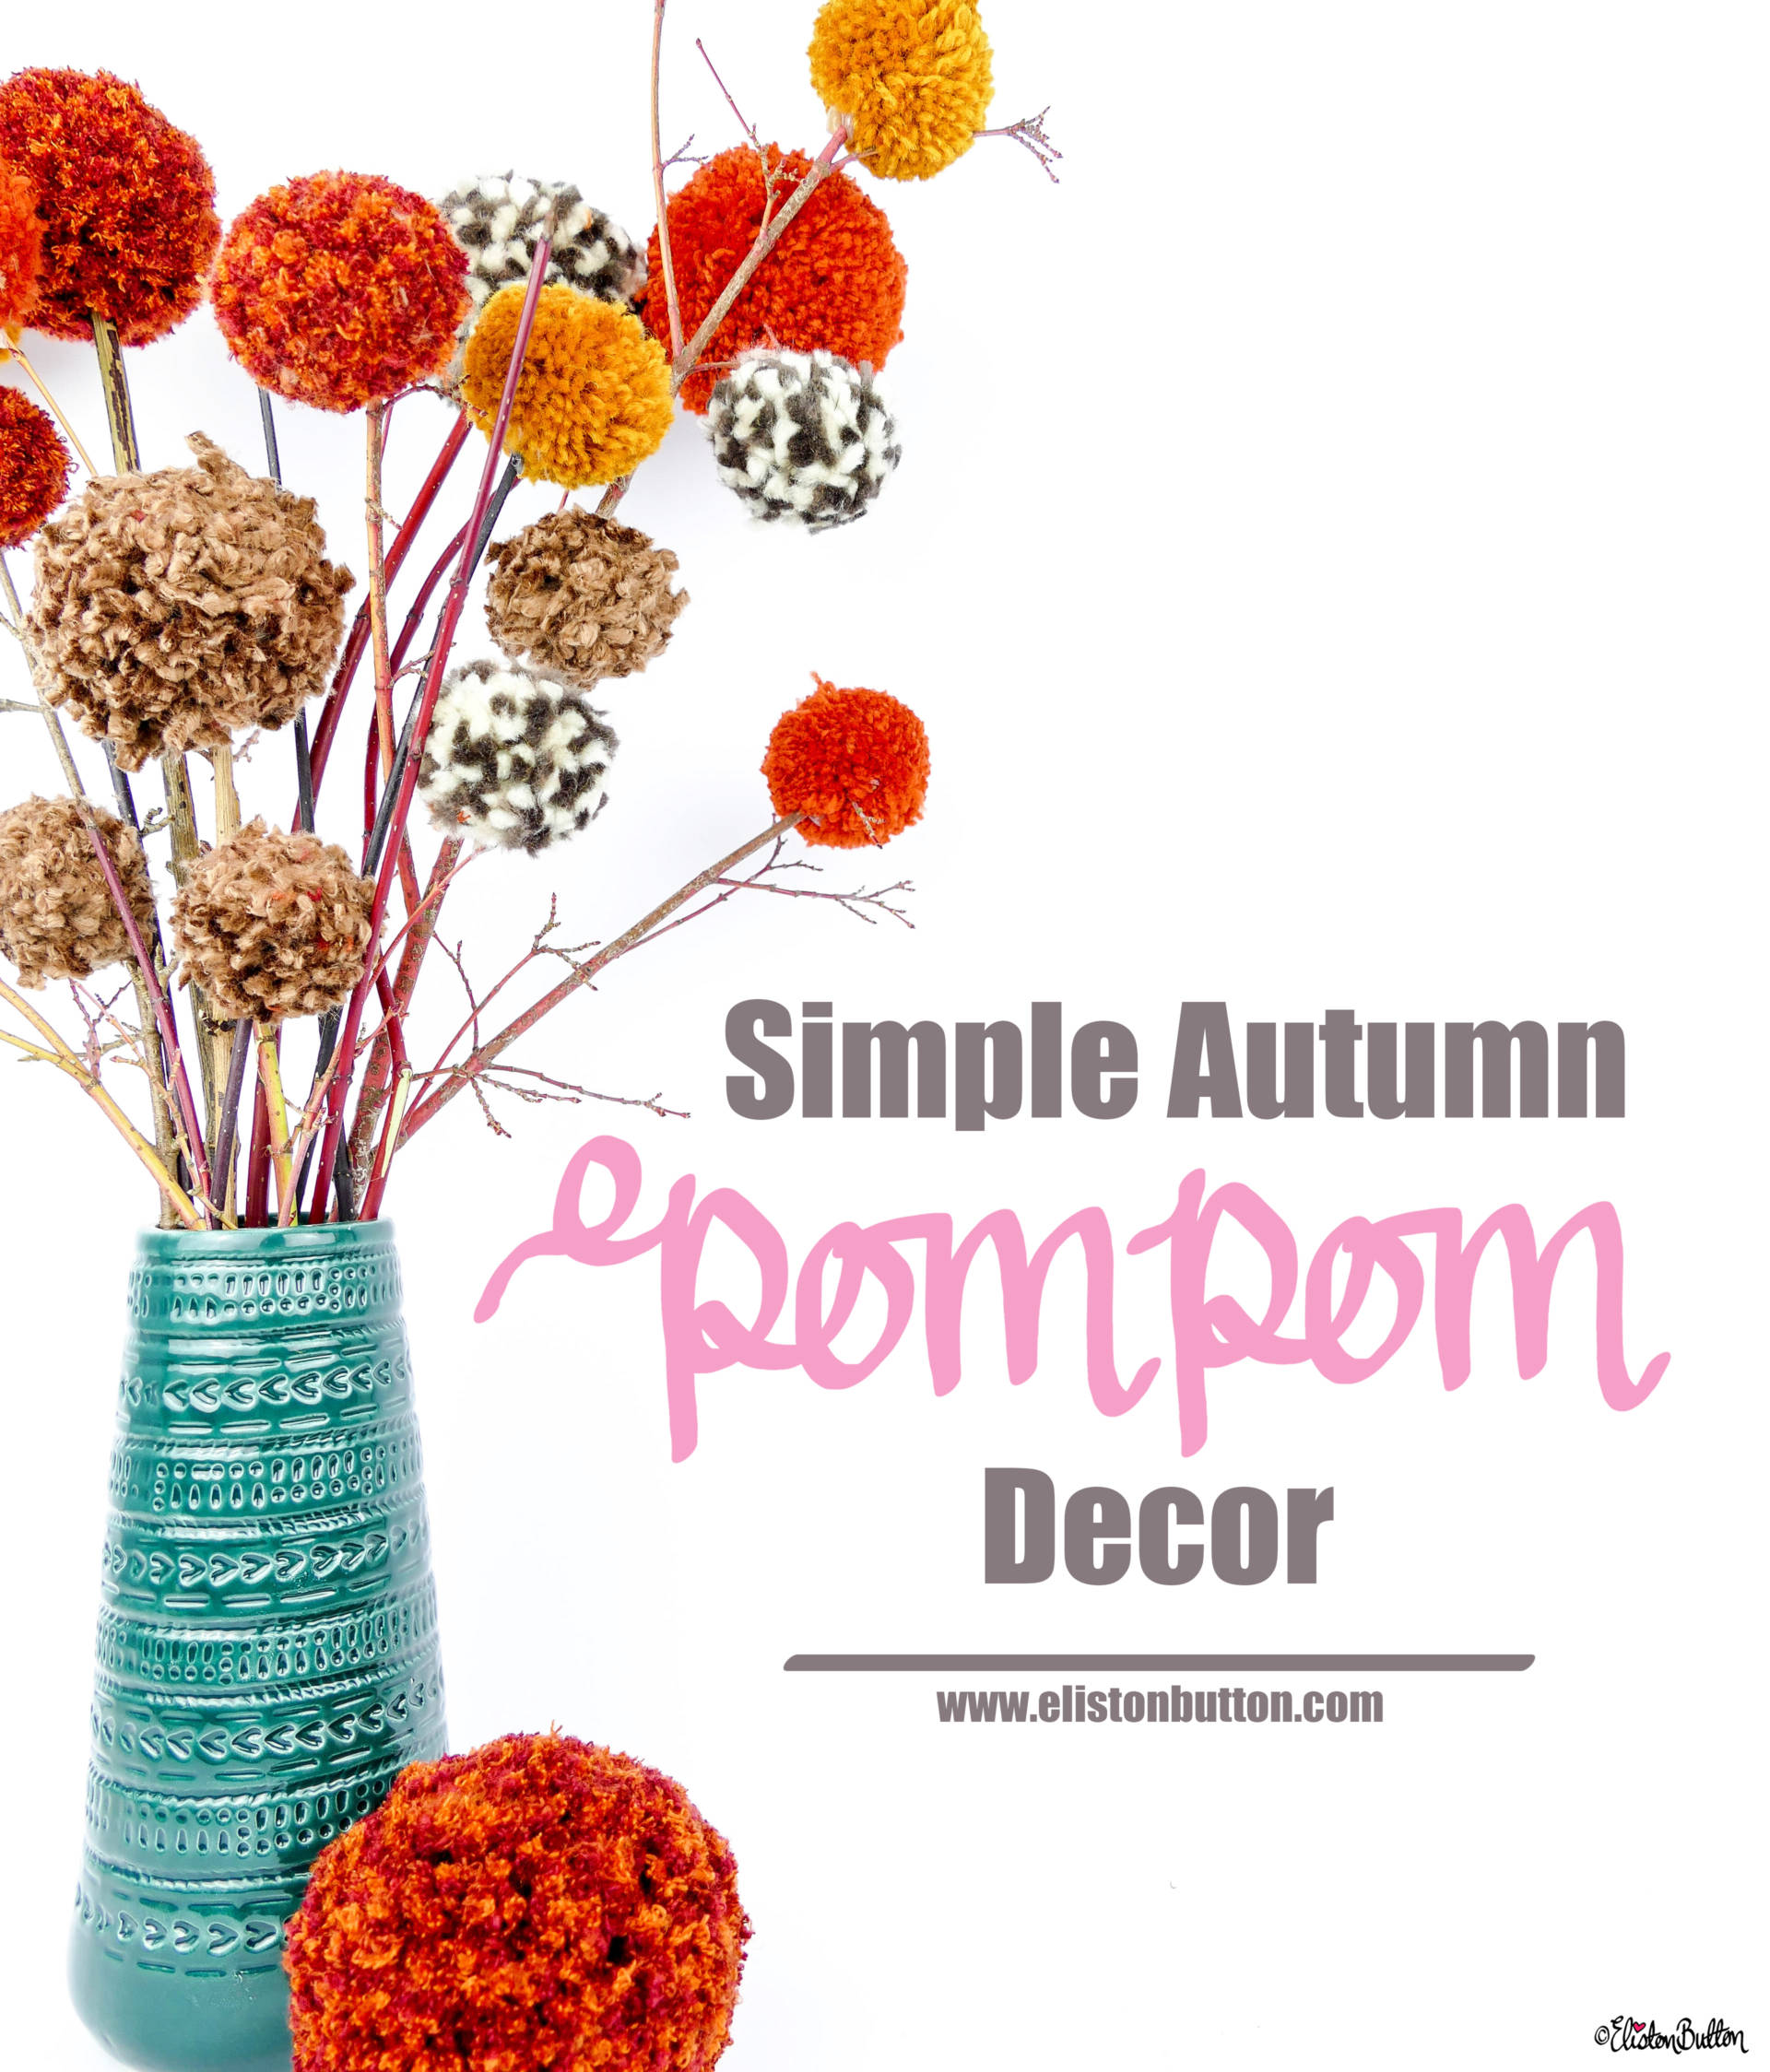 Simple Autumn Pom Pom Decor D.I.Y. Tutorial by Eliston Button - Tutorial Tuesday - Simple Autumn Pom Pom Decor at www.elistonbutton.com - Eliston Button - That Crafty Kid – Art, Design, Craft & Adventure.